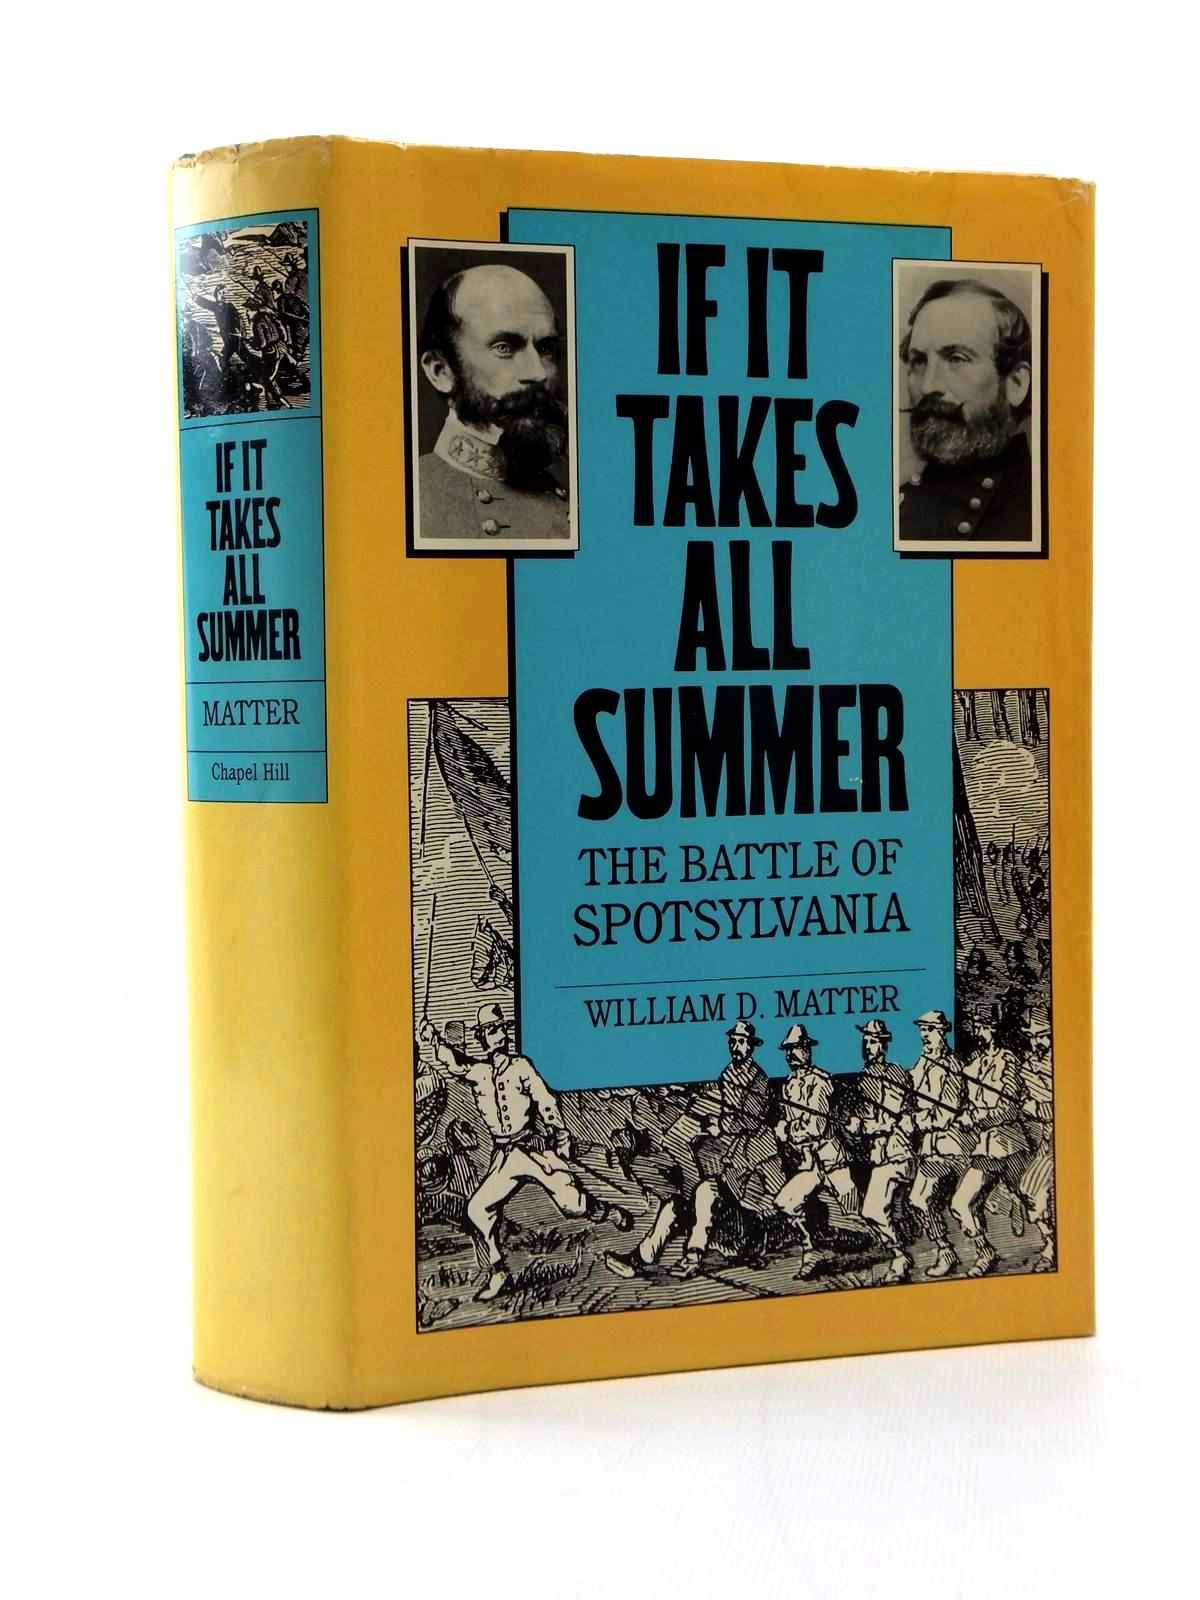 Photo of IF IT TAKES ALL SUMMER THE BATTLE OF SPOTSYLVANIA written by Matter, William D. published by University Of North Carolina Press, Chapel Hill (STOCK CODE: 2123359)  for sale by Stella & Rose's Books